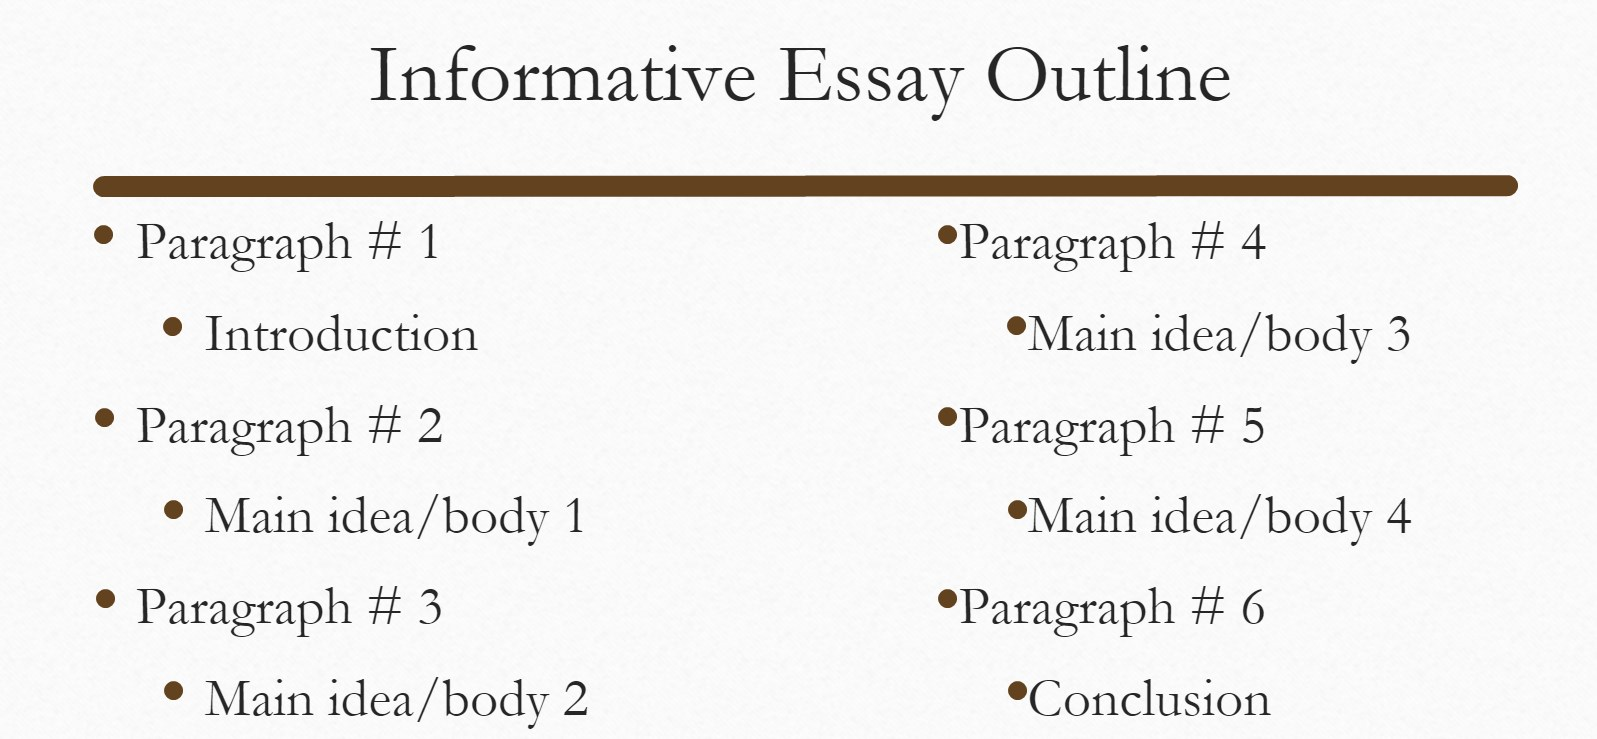 steps to writing an informational essay Links to the writing steps are found on the left, and additional writing resources are located across the top 1 research: begin the essay writing process by researching your topic, making yourself an expert utilize the internet, the academic databases, and the library.